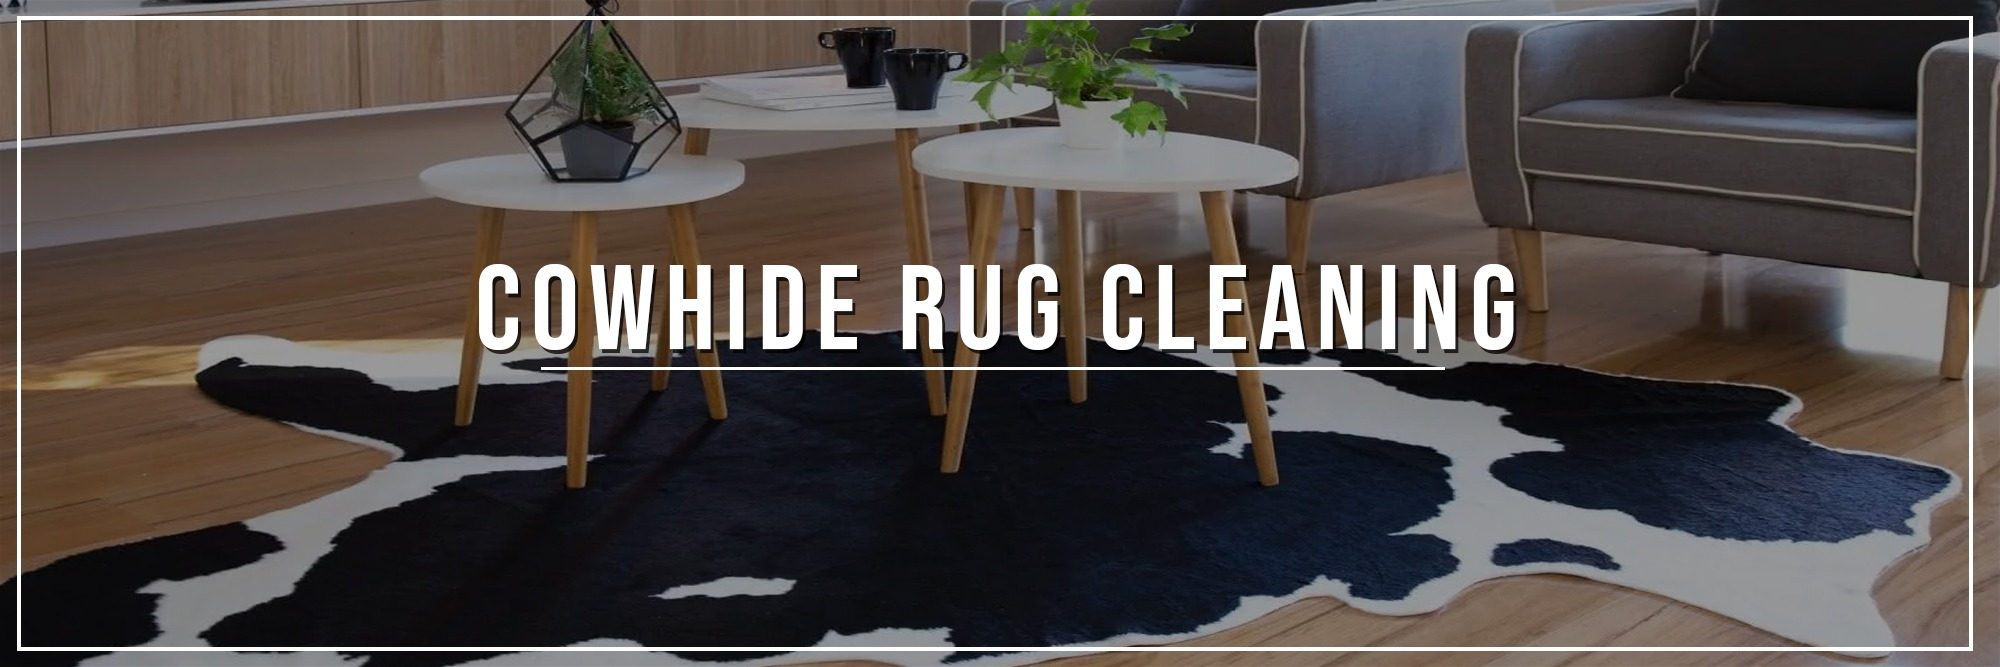 Best Cowhide Rug Cleaning Services In San Francisco Abc